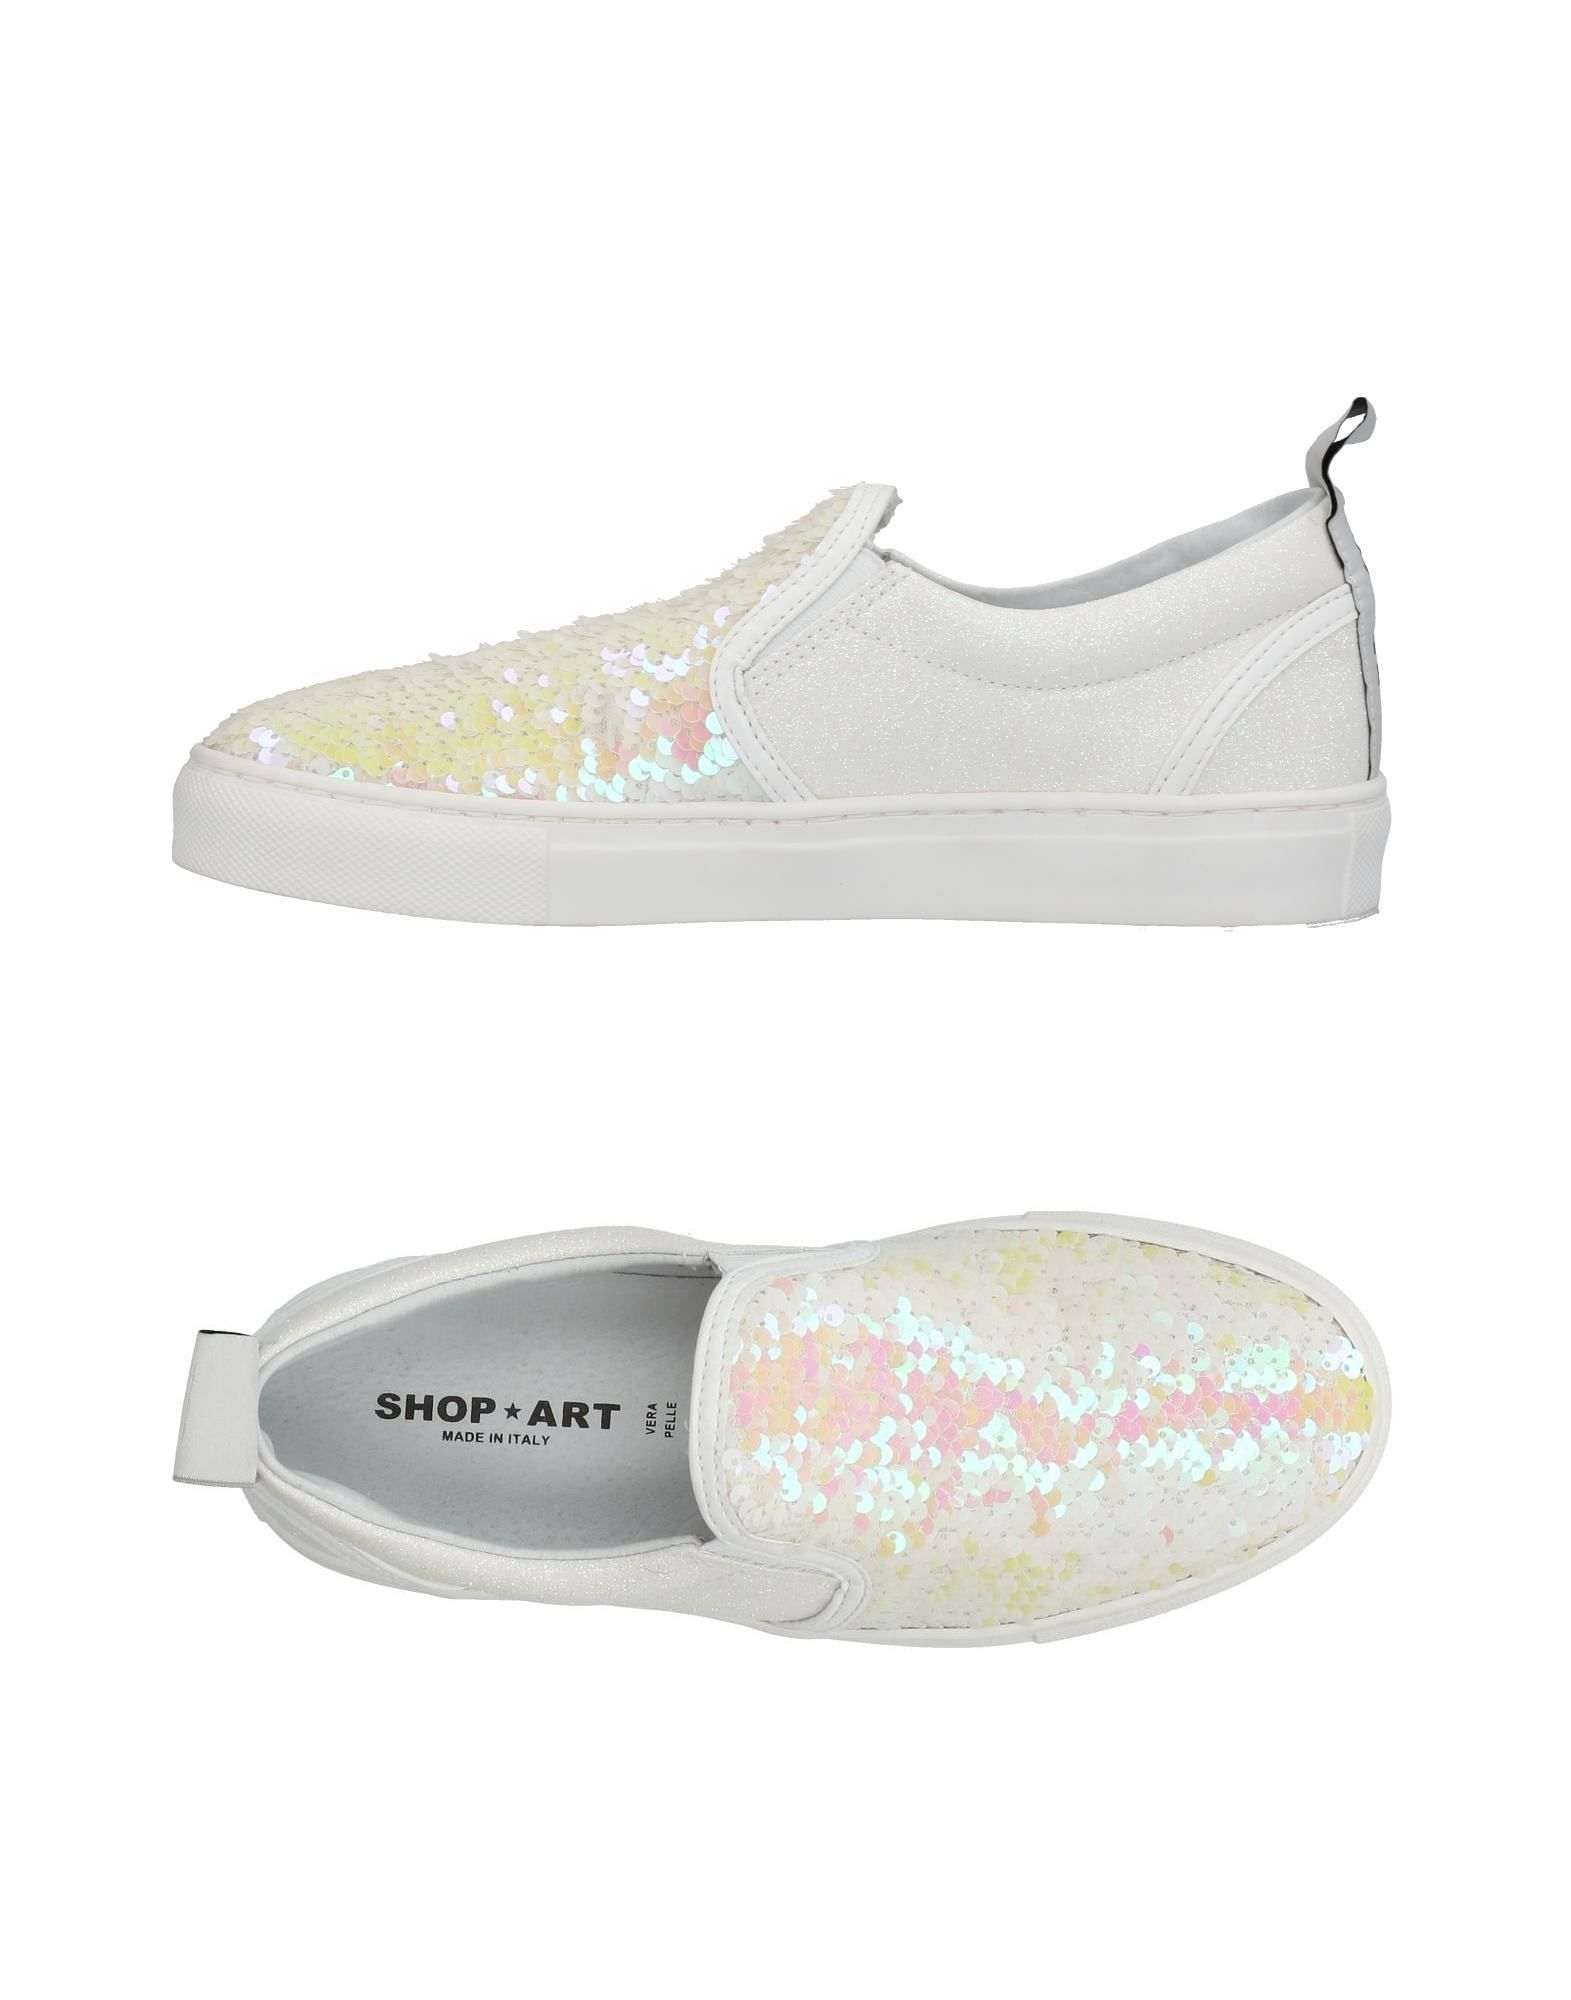 Sneakers Shop ★ Art Donna - 11459894FW